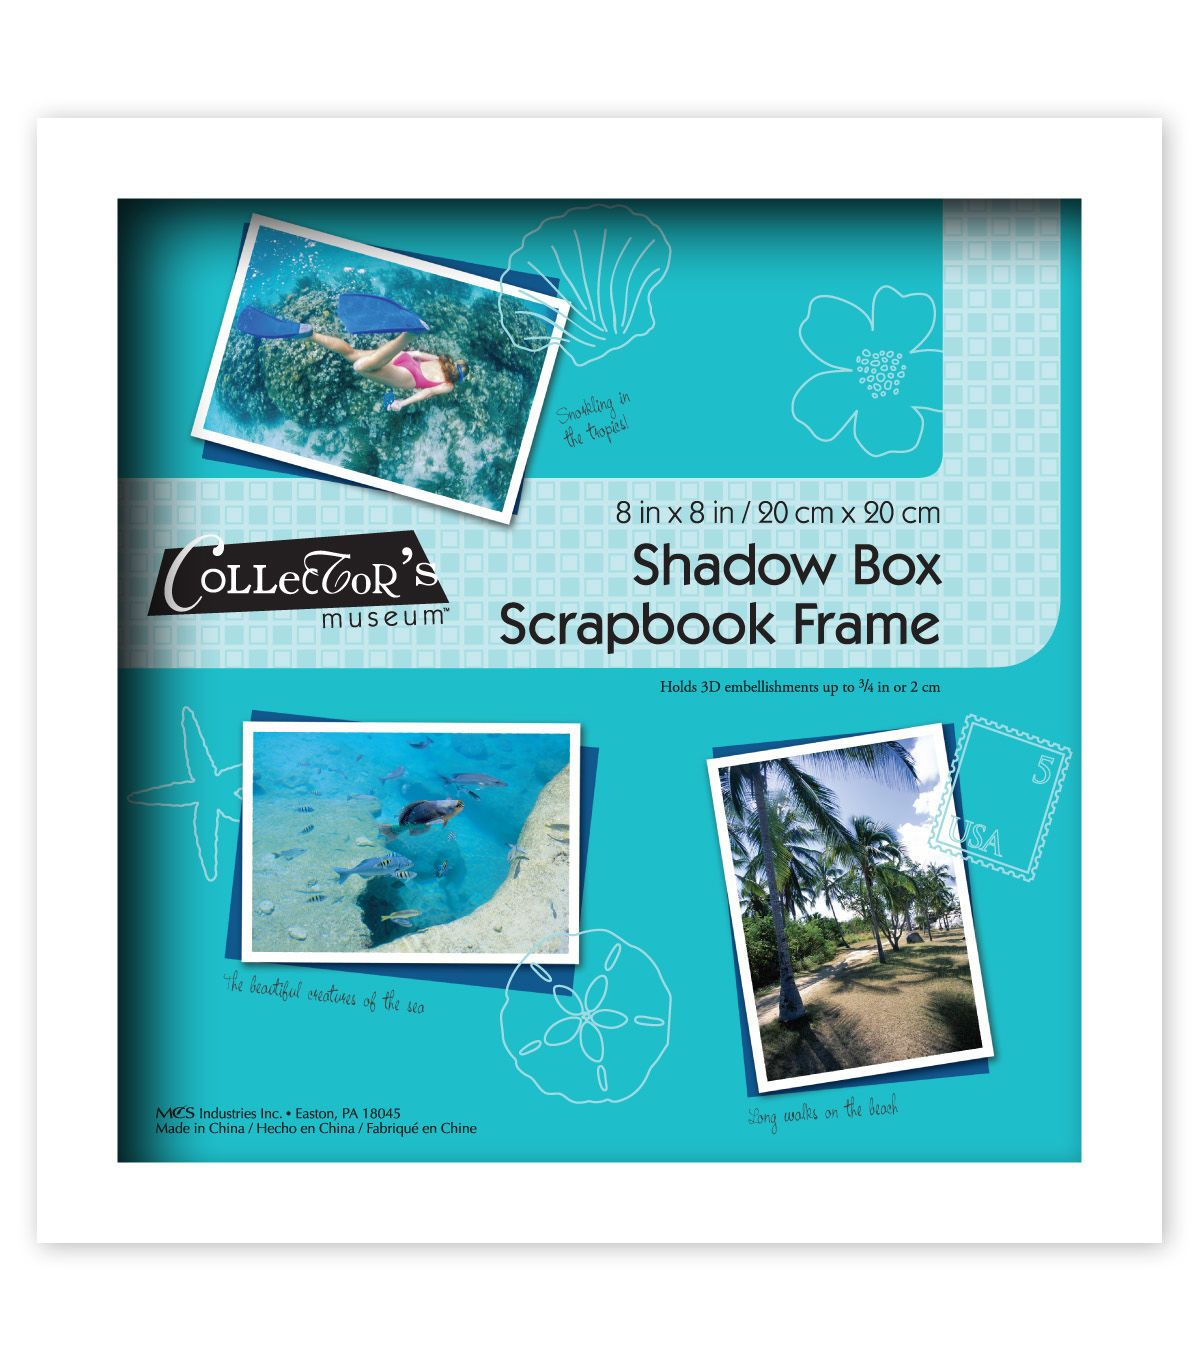 Mcs Industries Collector S Museum Shadow Box Scrapbook Frame 8 X8 Shadow Box Shadow Box Frames Box Frames